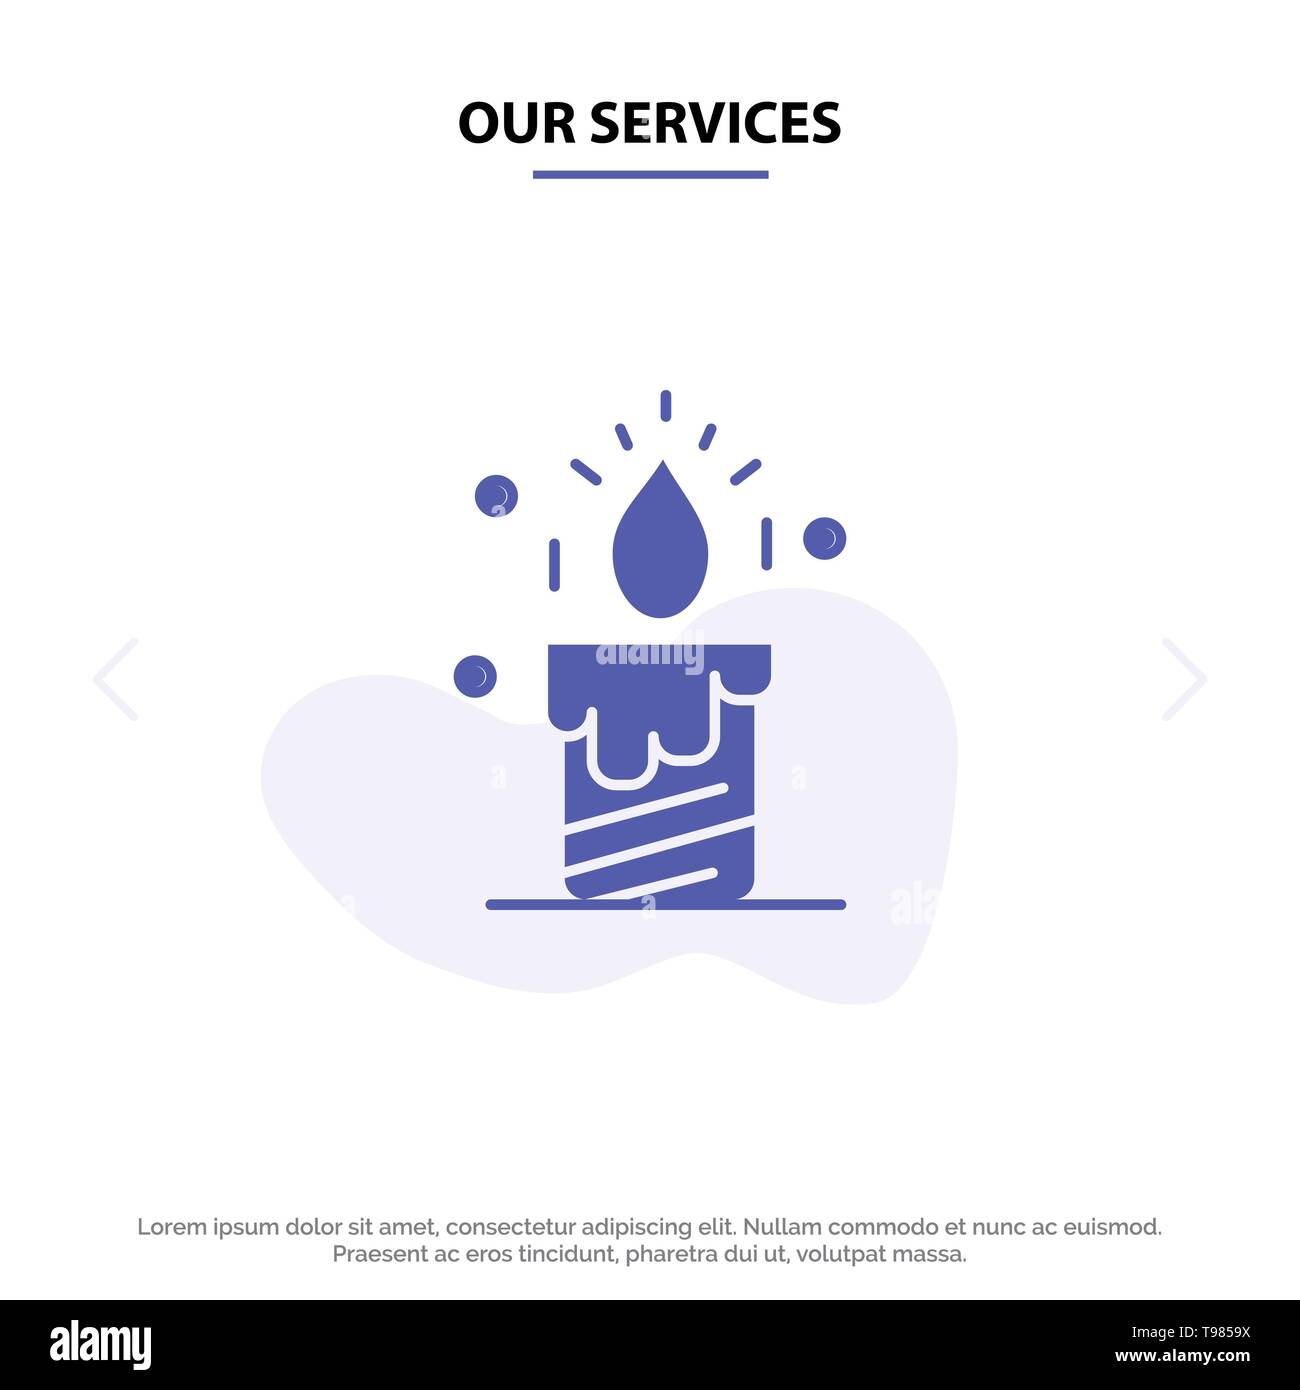 Our Services Candle, Light, Wedding, Love Solid Glyph Icon Web card Template - Stock Image